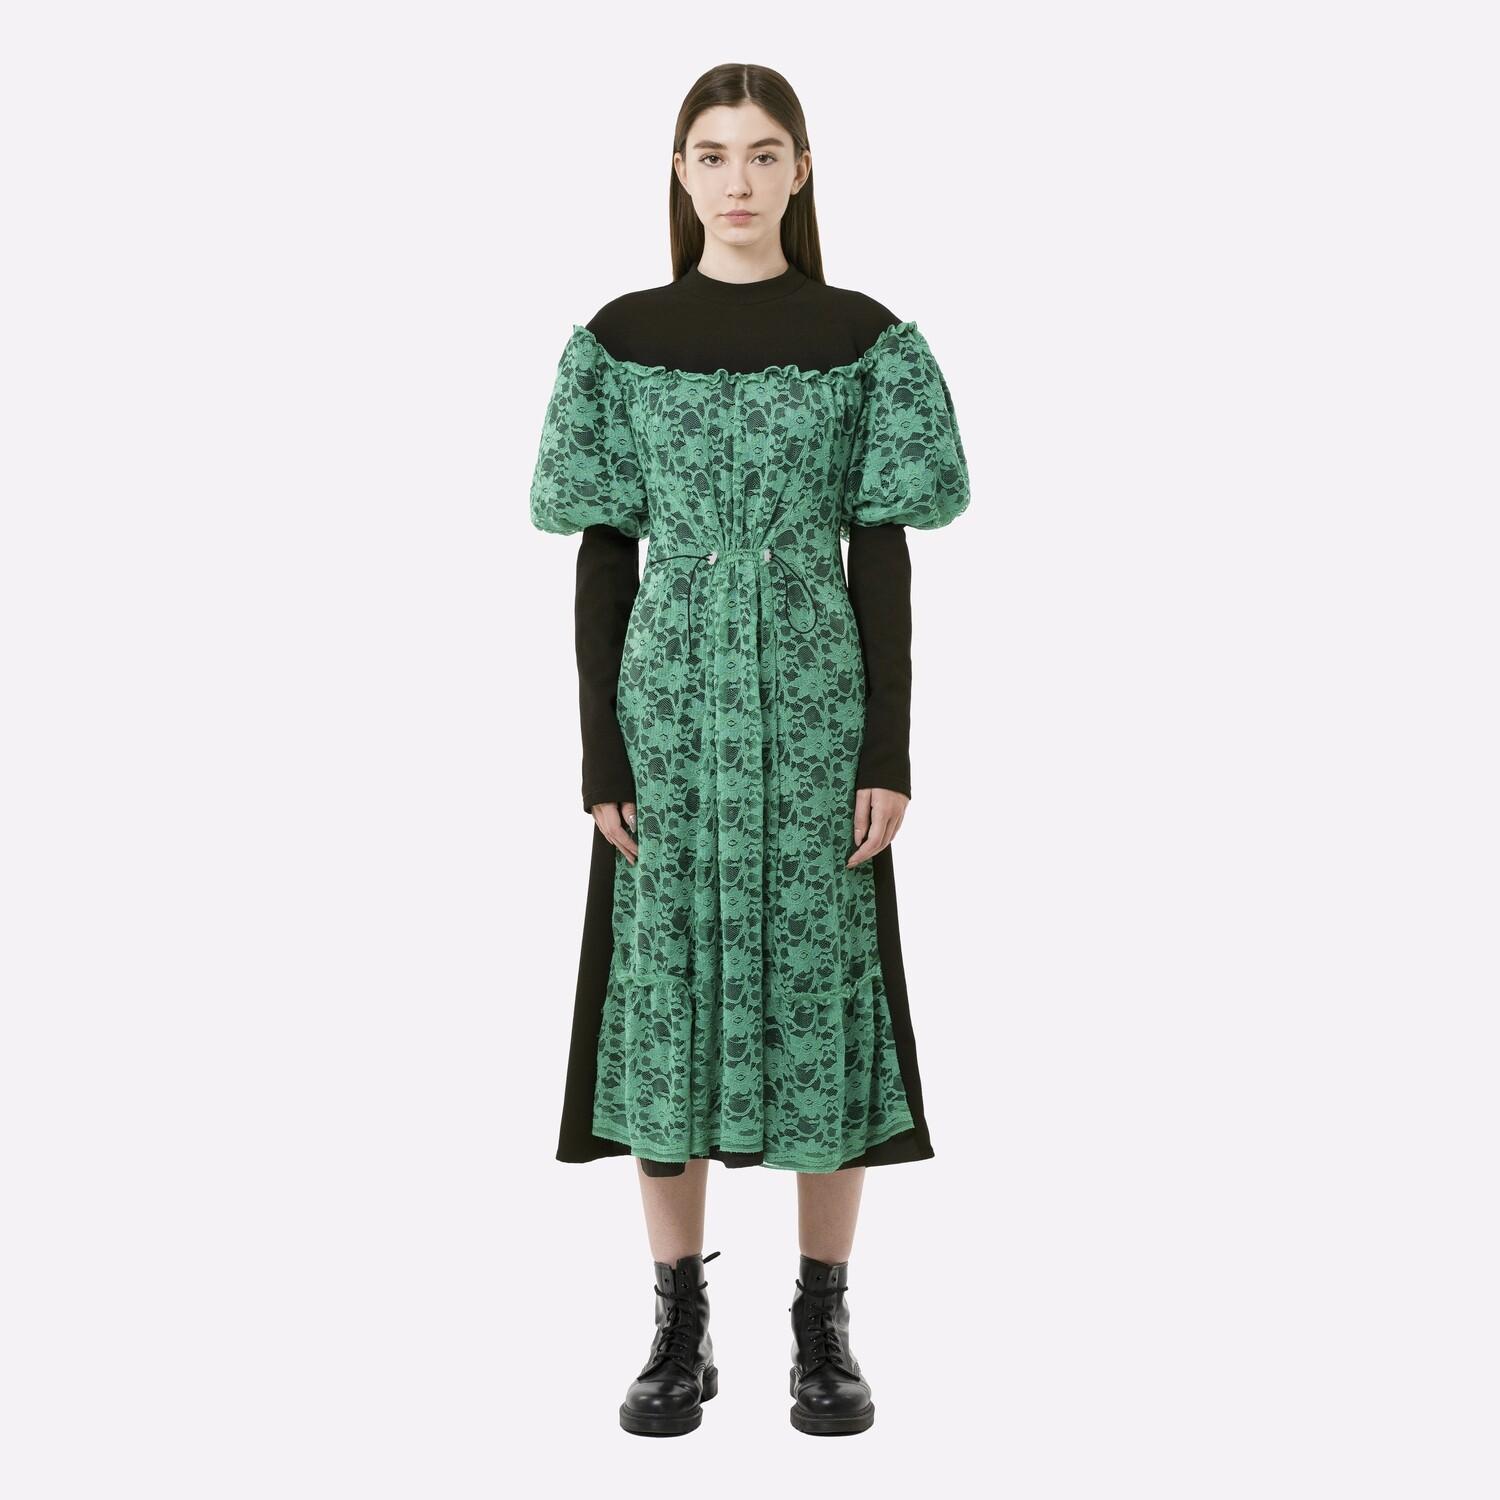 the fitting room dress PRE-ORDER